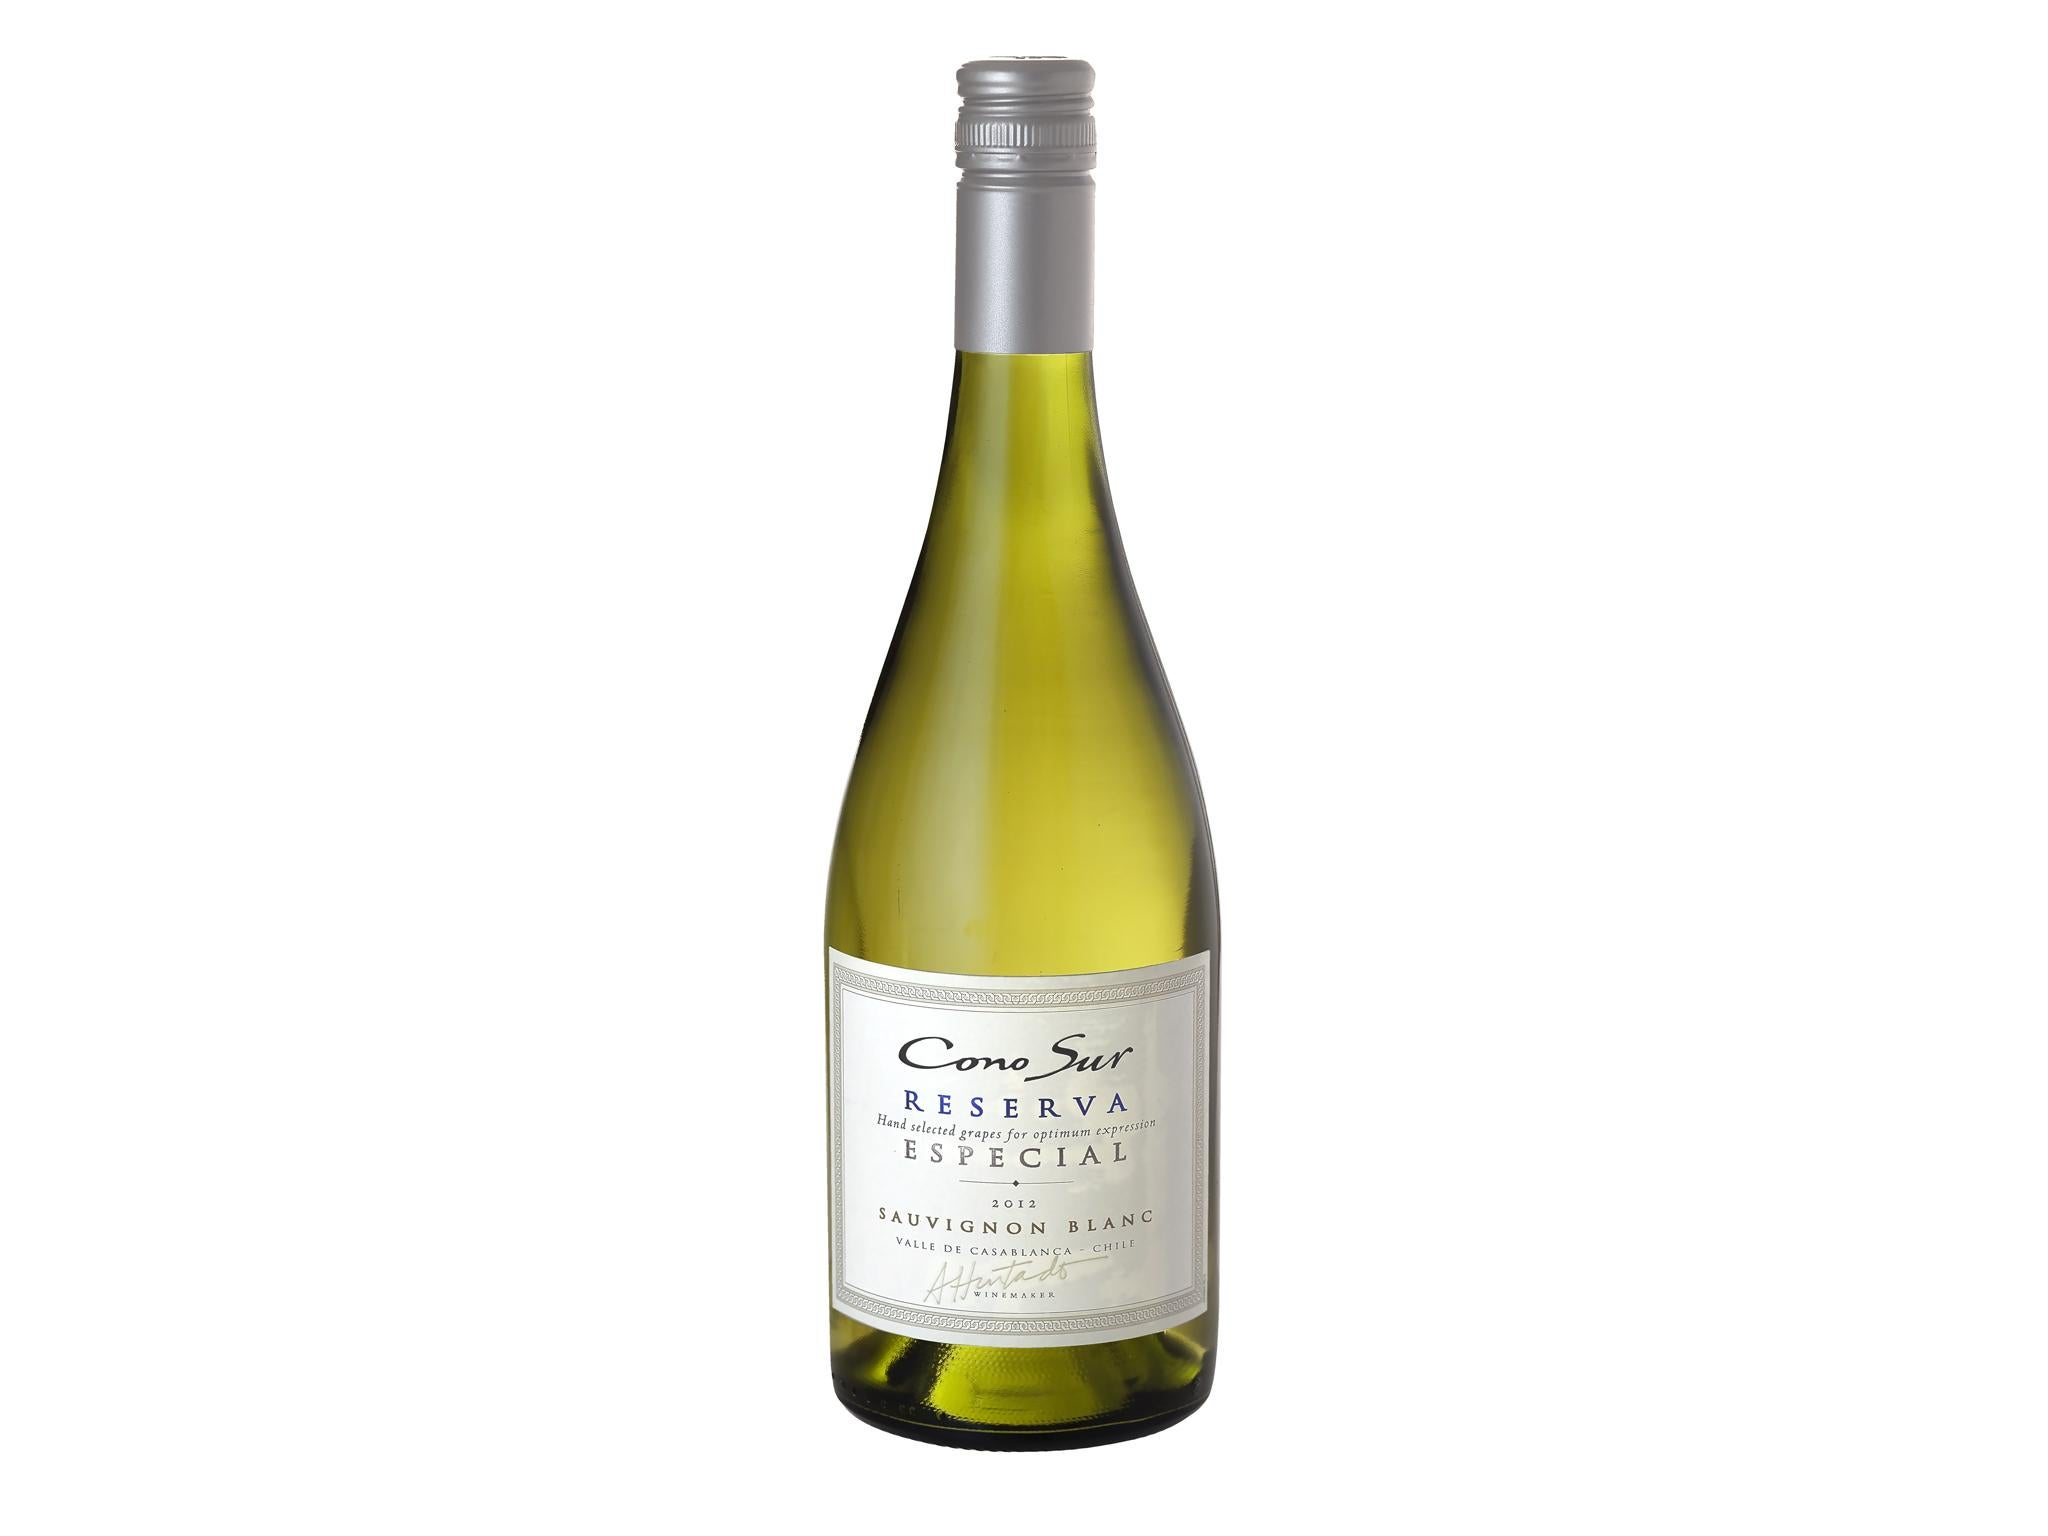 15 best sauvignon blanc wines | The Independent